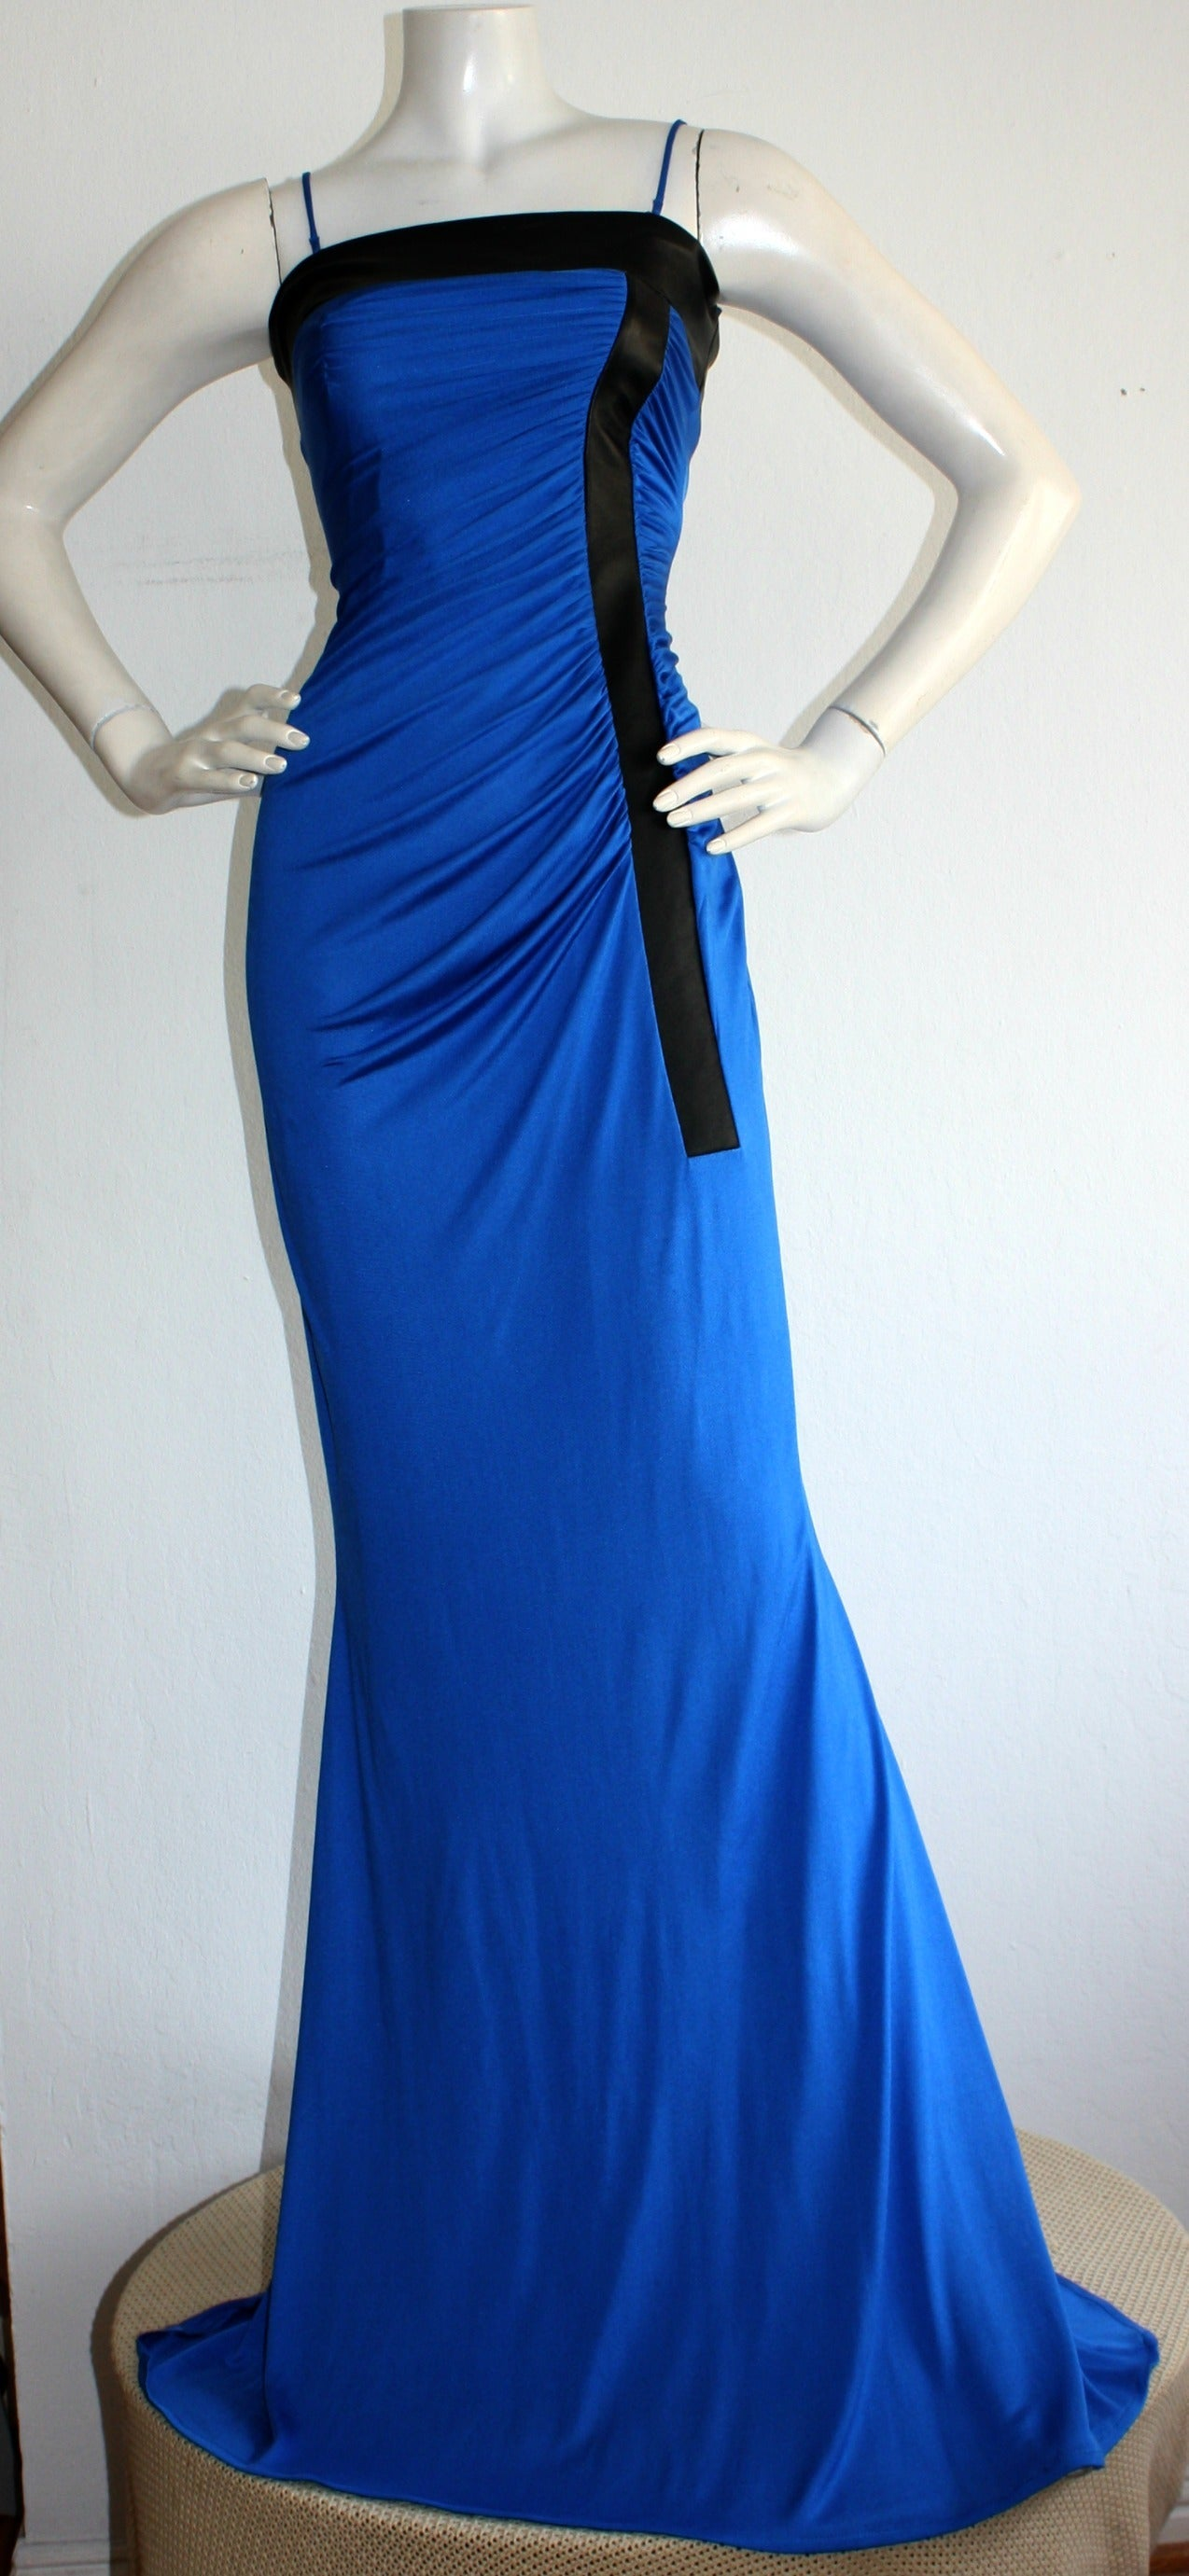 Ivana Trump's Lloyd Klein Couture Blue Silk Jersey & Black Leather Grecian Gown For Sale 2